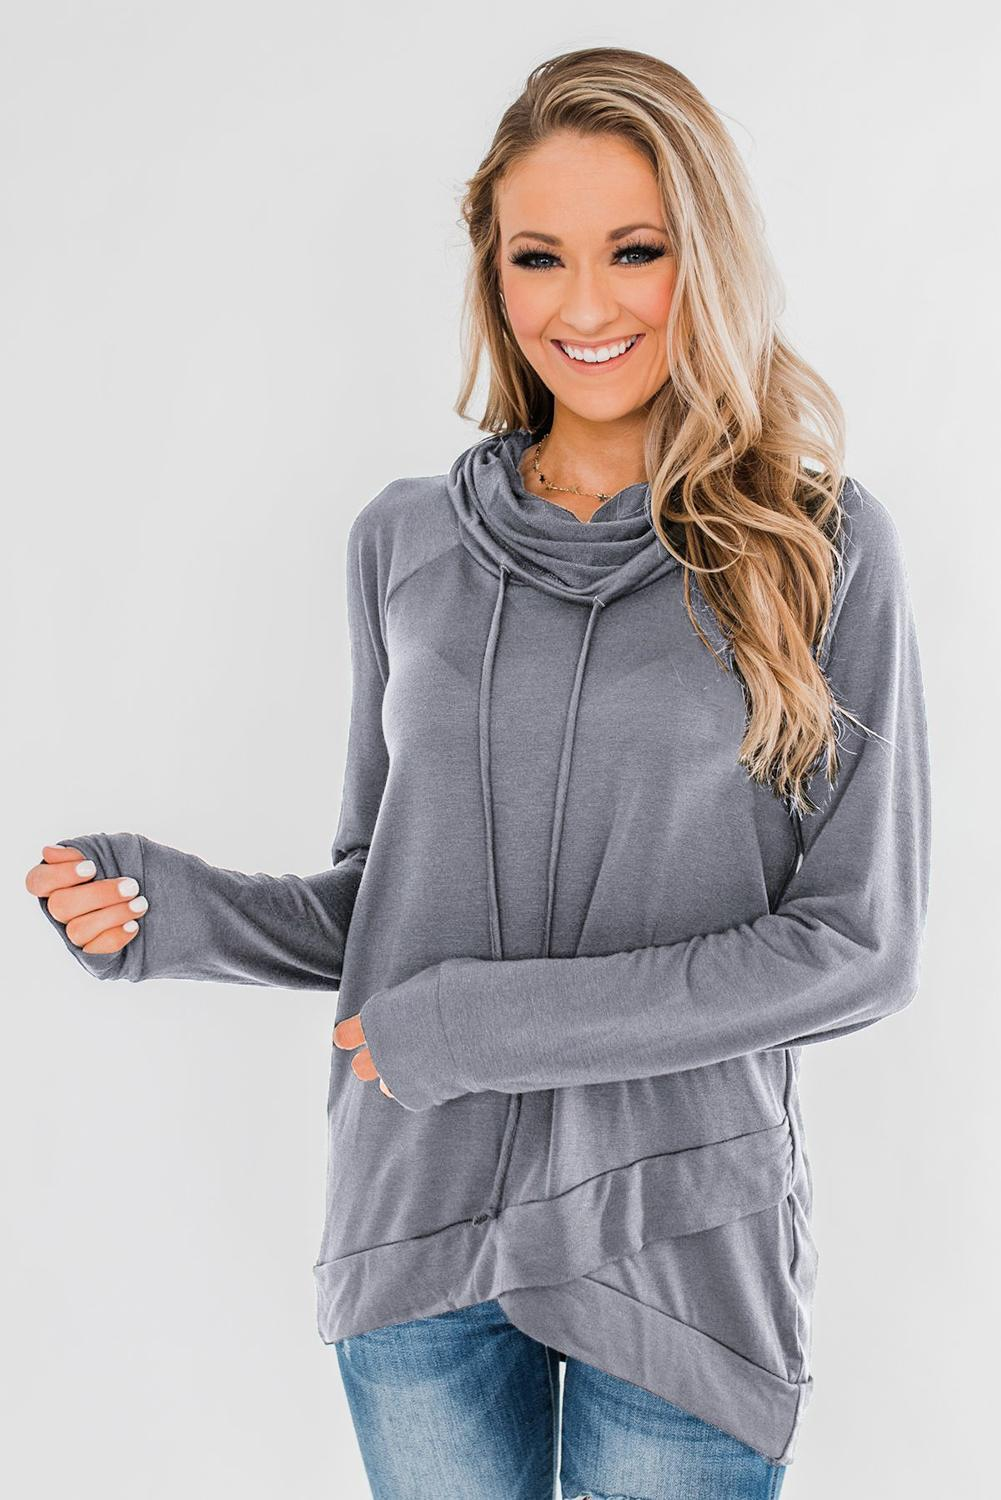 KaleaBoutique Gray Casual Cowl Neck Pullover Sweatshirt - KaleaBoutique.com